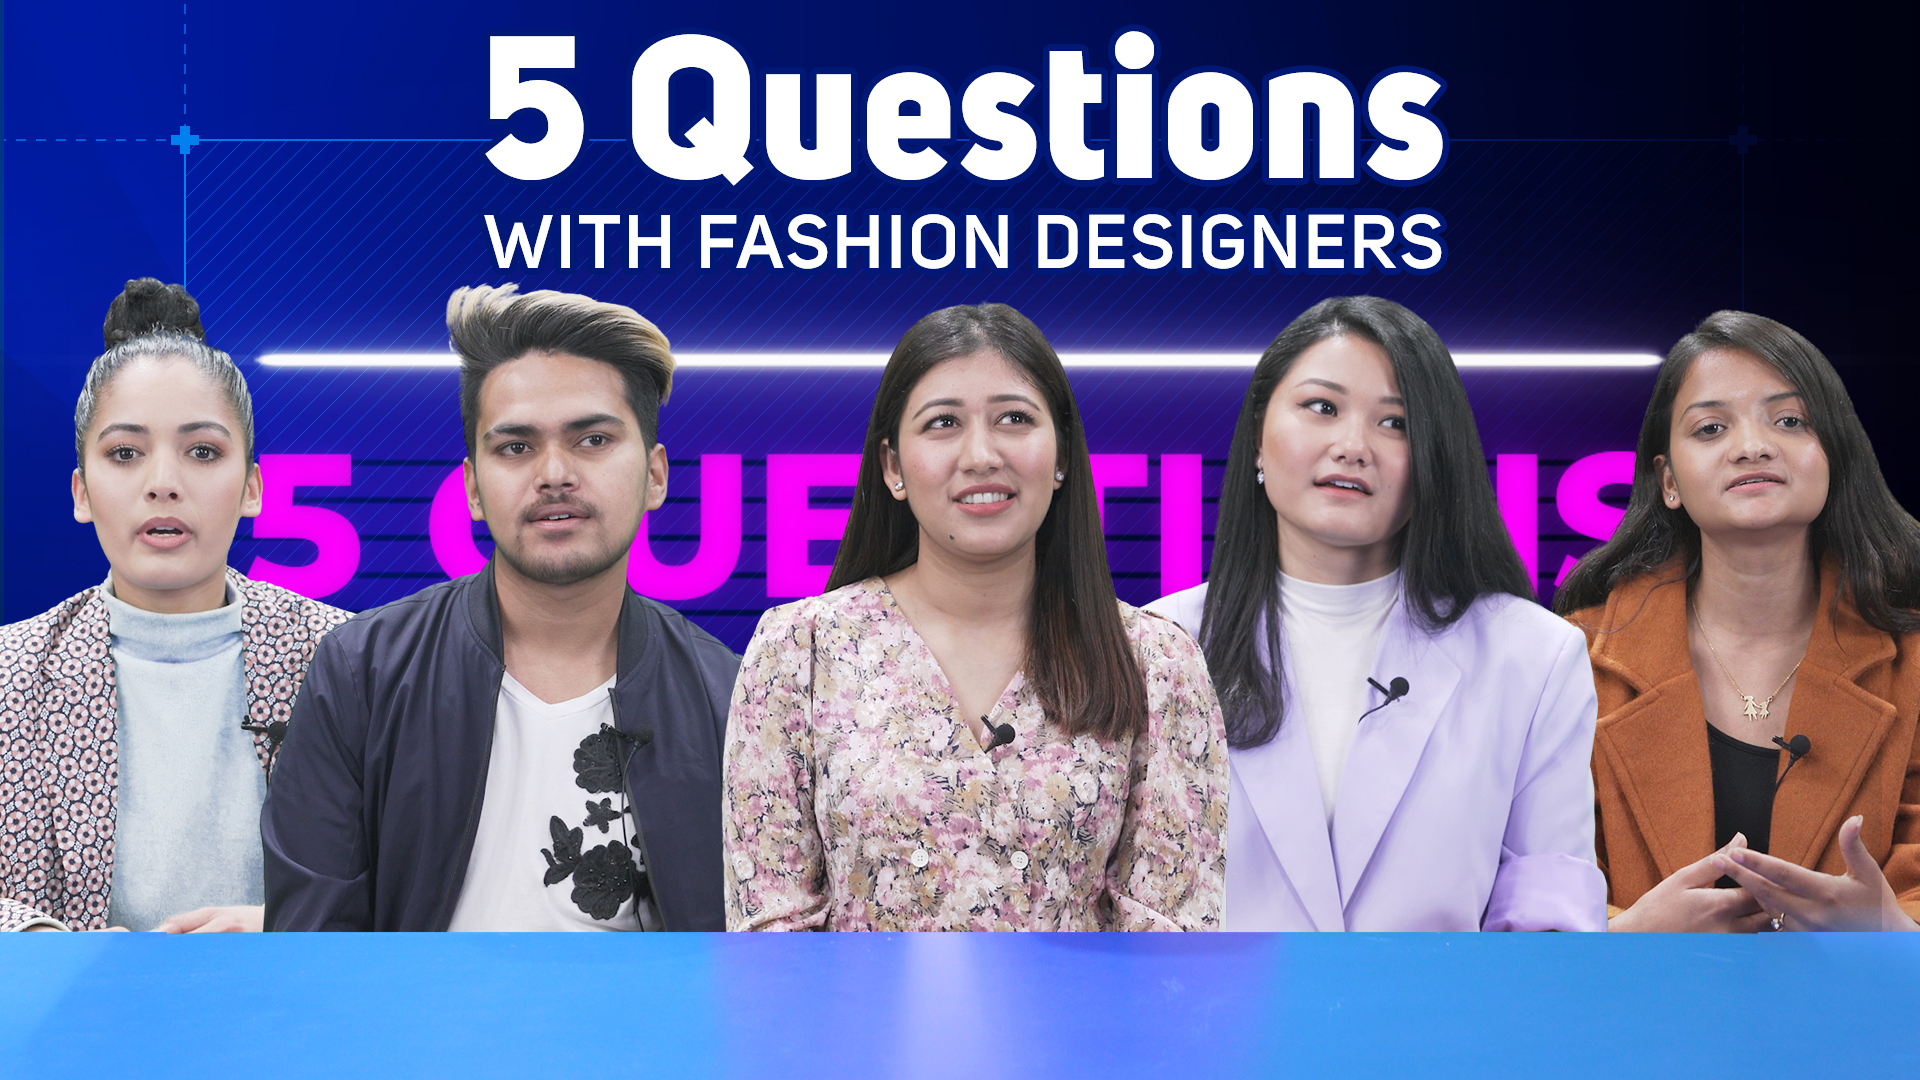 5 Questions with Fashion Designers